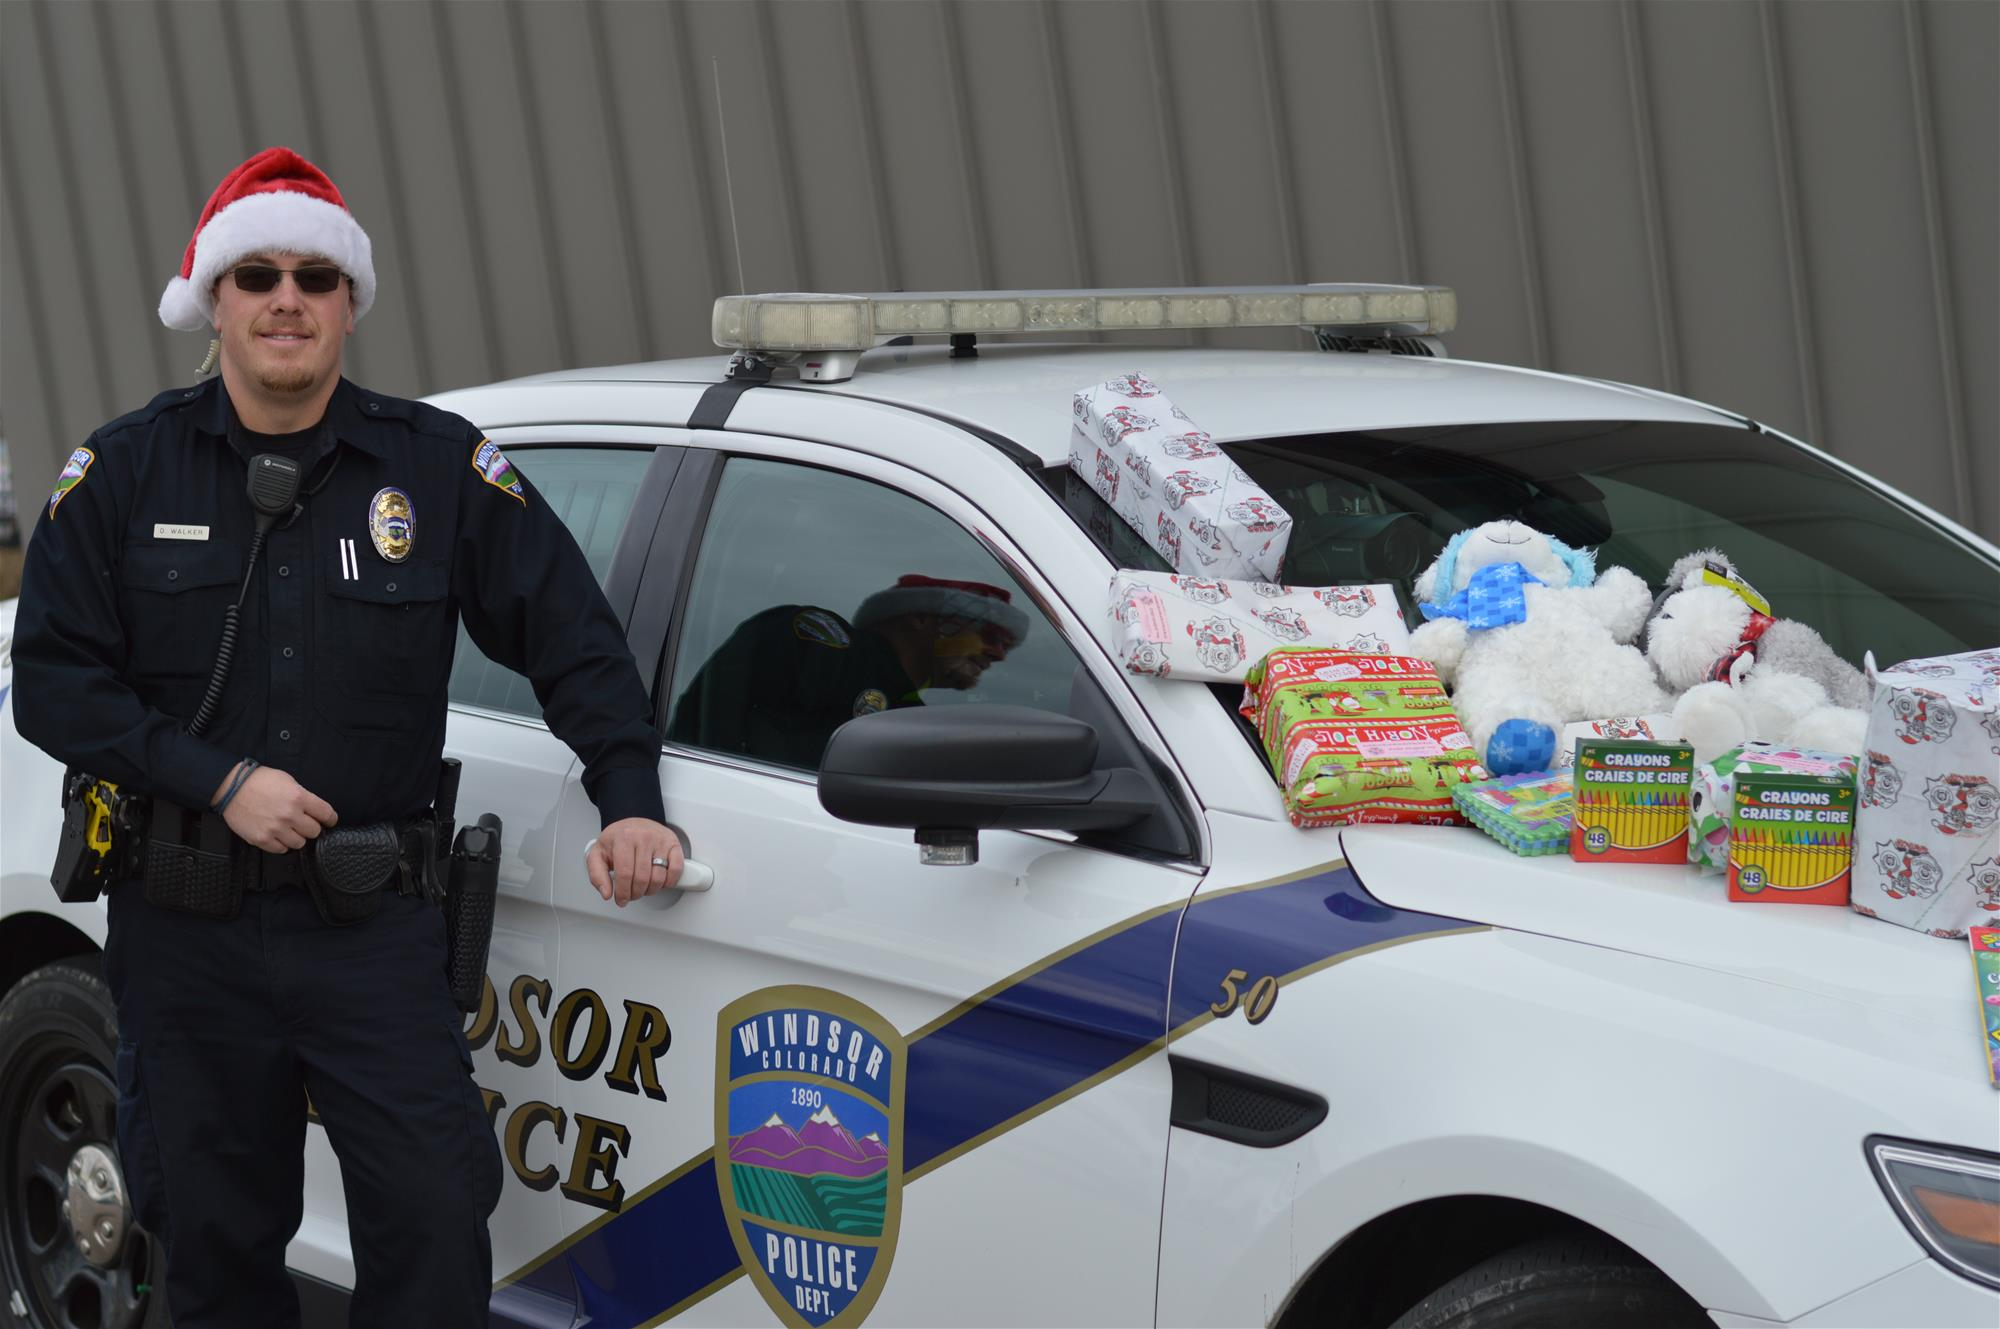 A police officer wearing a Santa hat standing next to a police cruiser with presents on the hood of